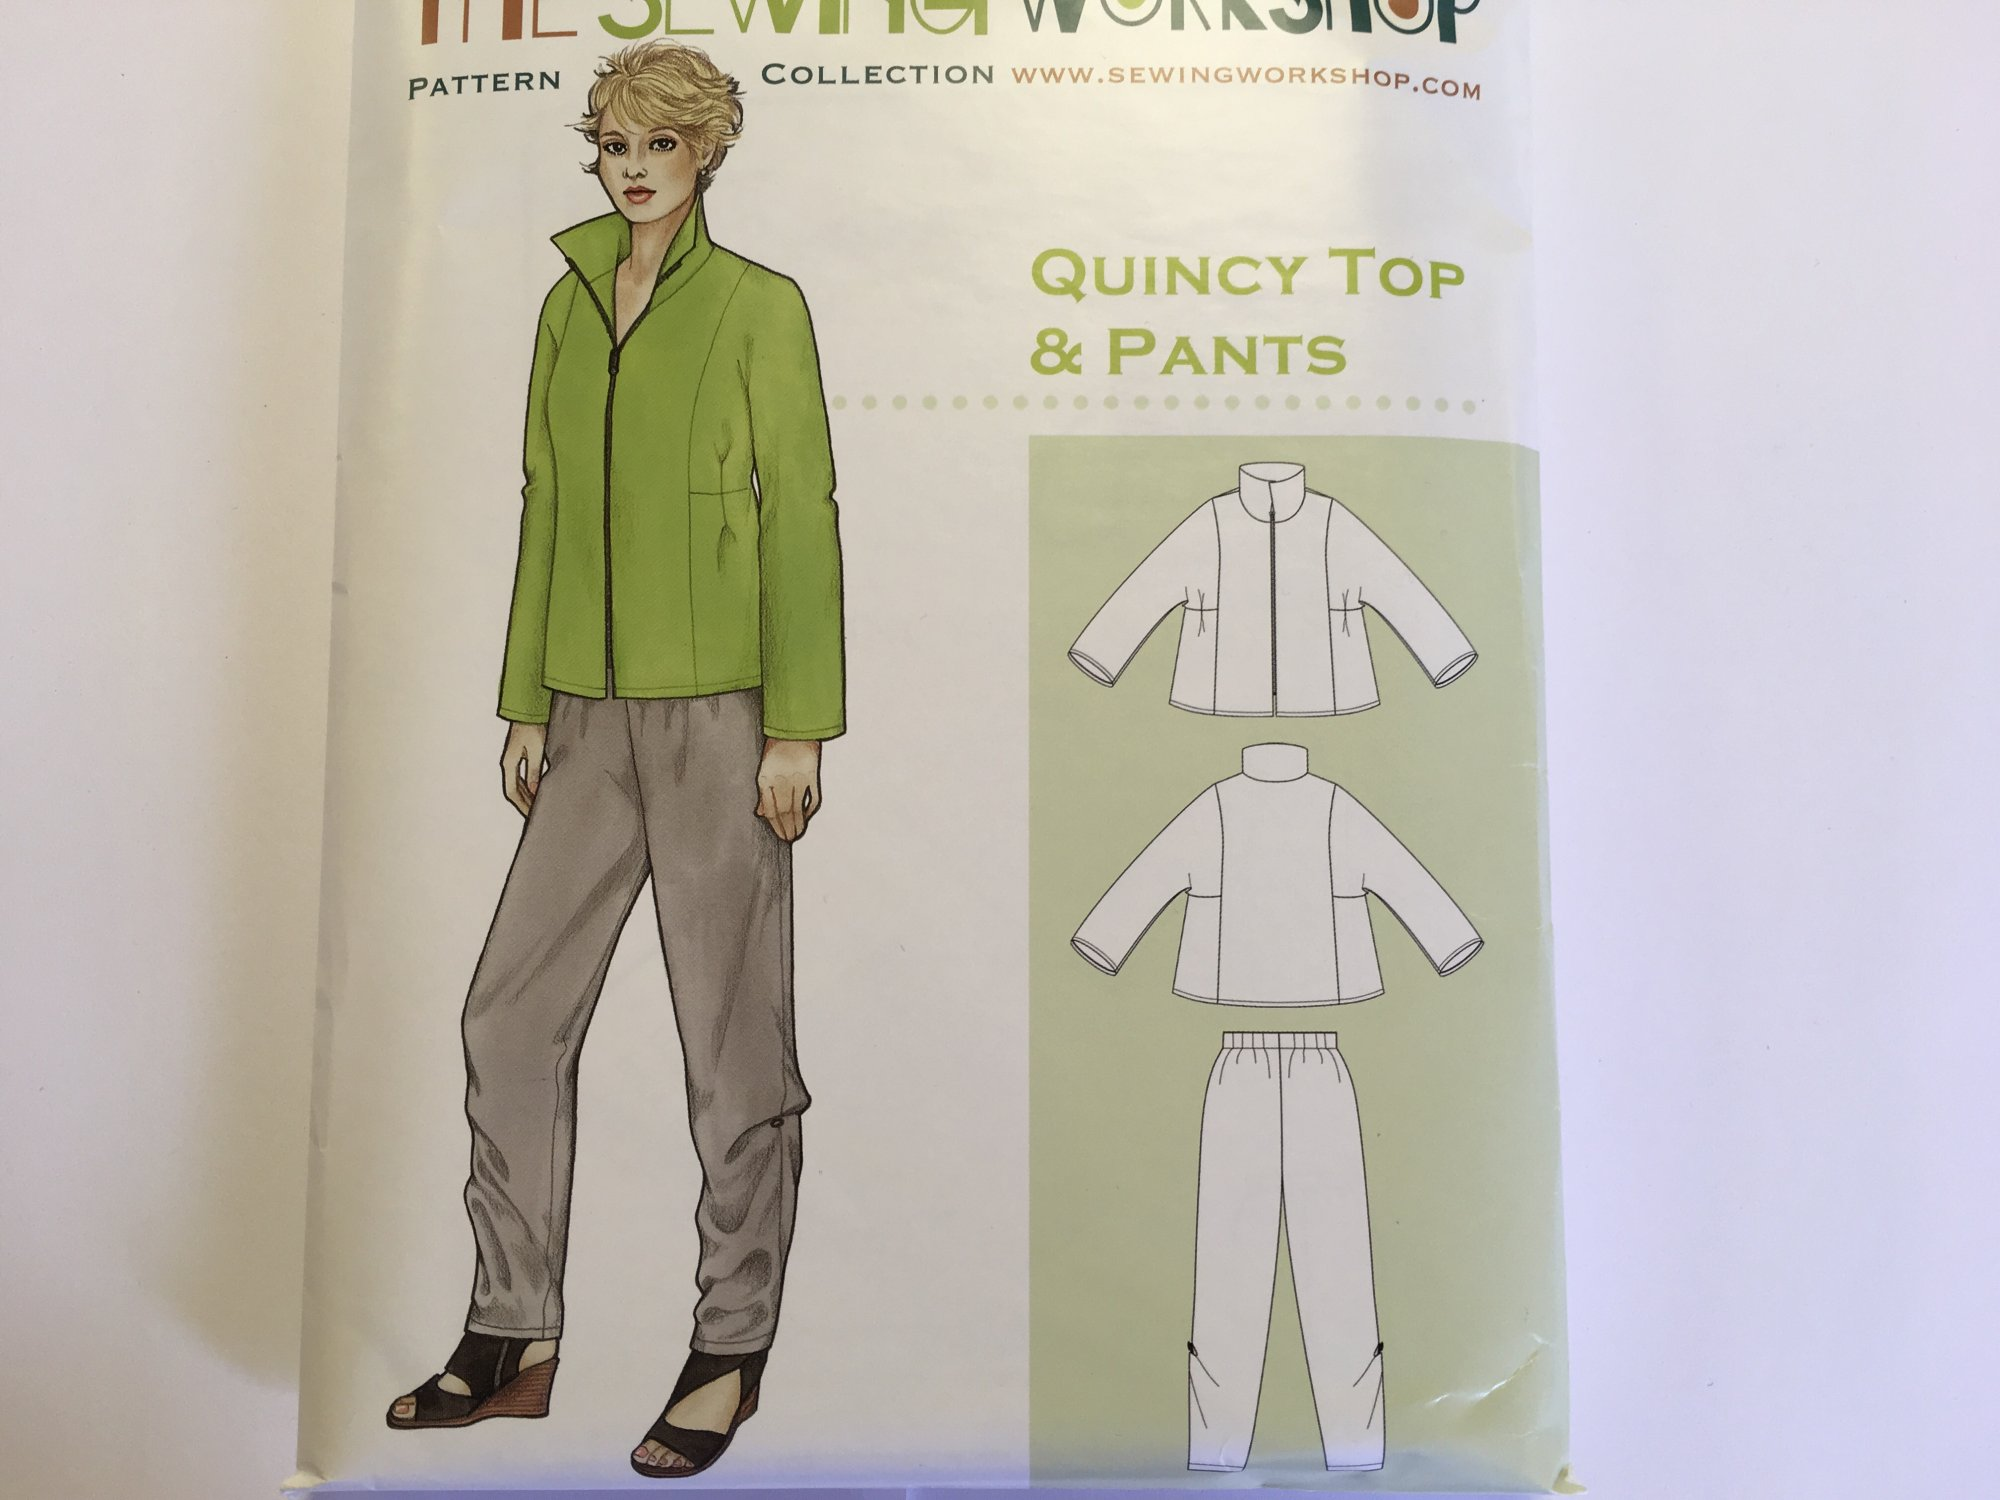 QUINCY TOP & PANTS by The Sewing Workshop